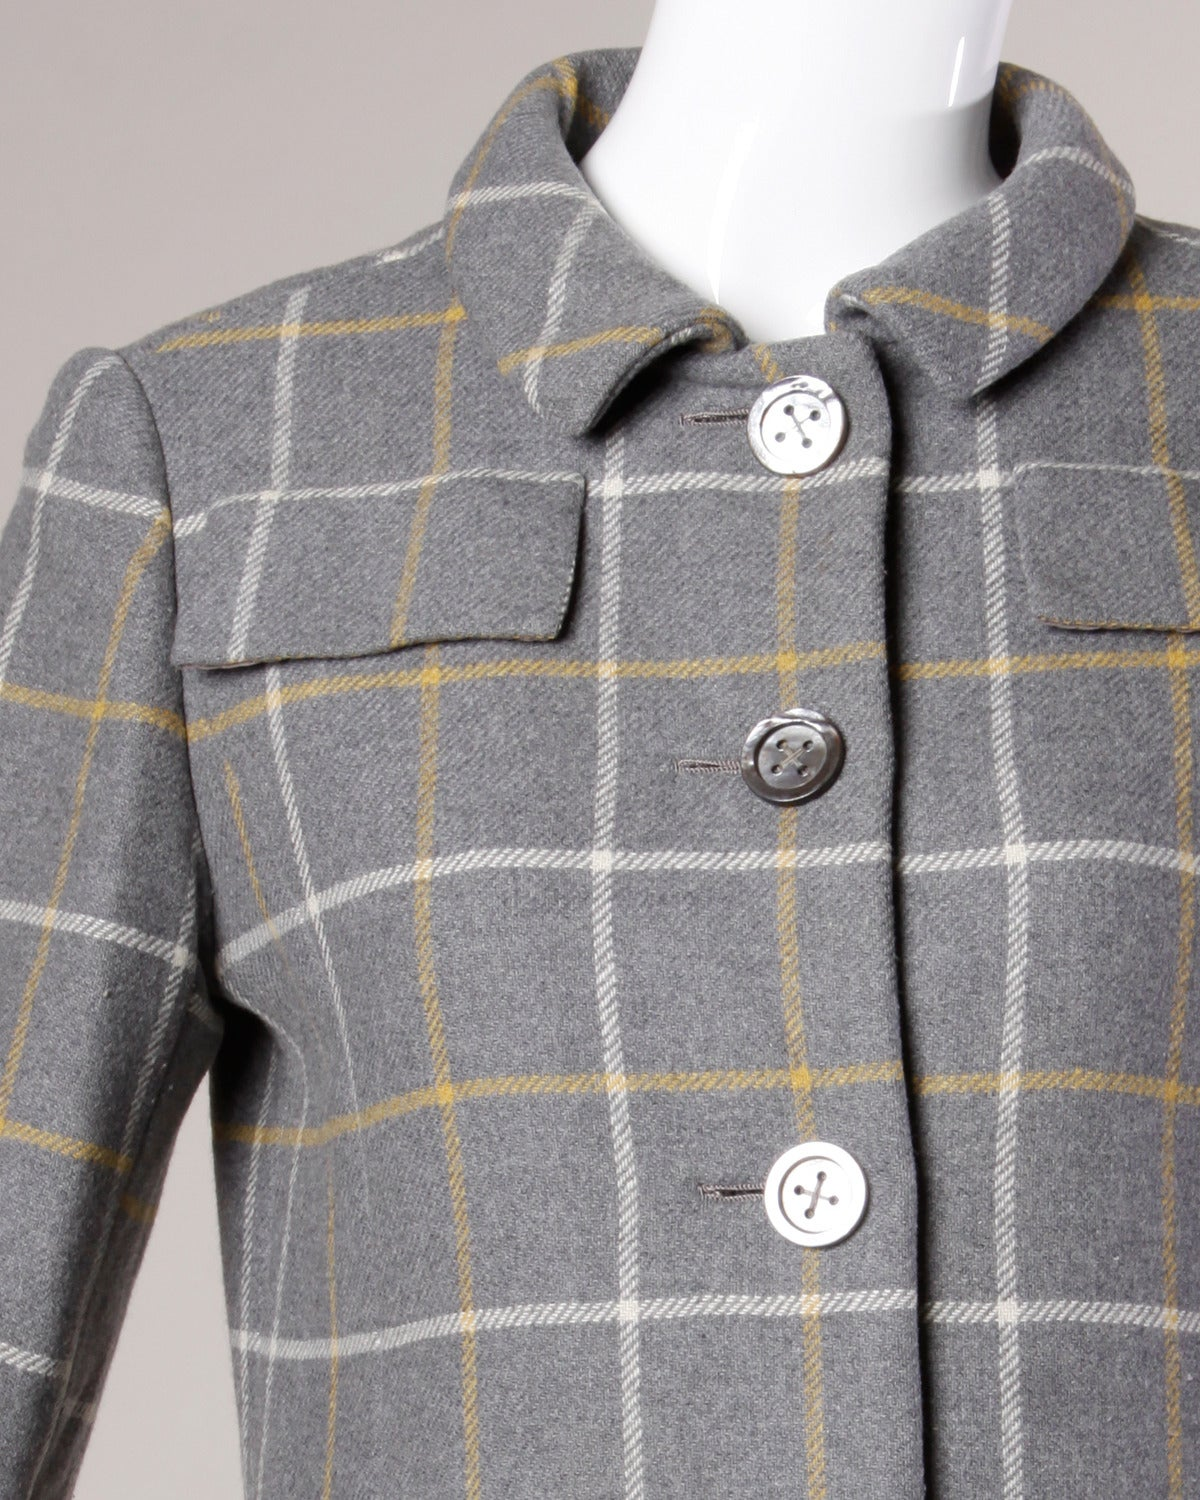 Beautifully tailored wool jacket with heavy shell buttons and flap pockets by Christian Dior.  Details:  Fully Lined Shell Buttons Fabric: Wool Estimated Size: Medium Label: Christian Dior New York Colors: Gray/ Yellow/